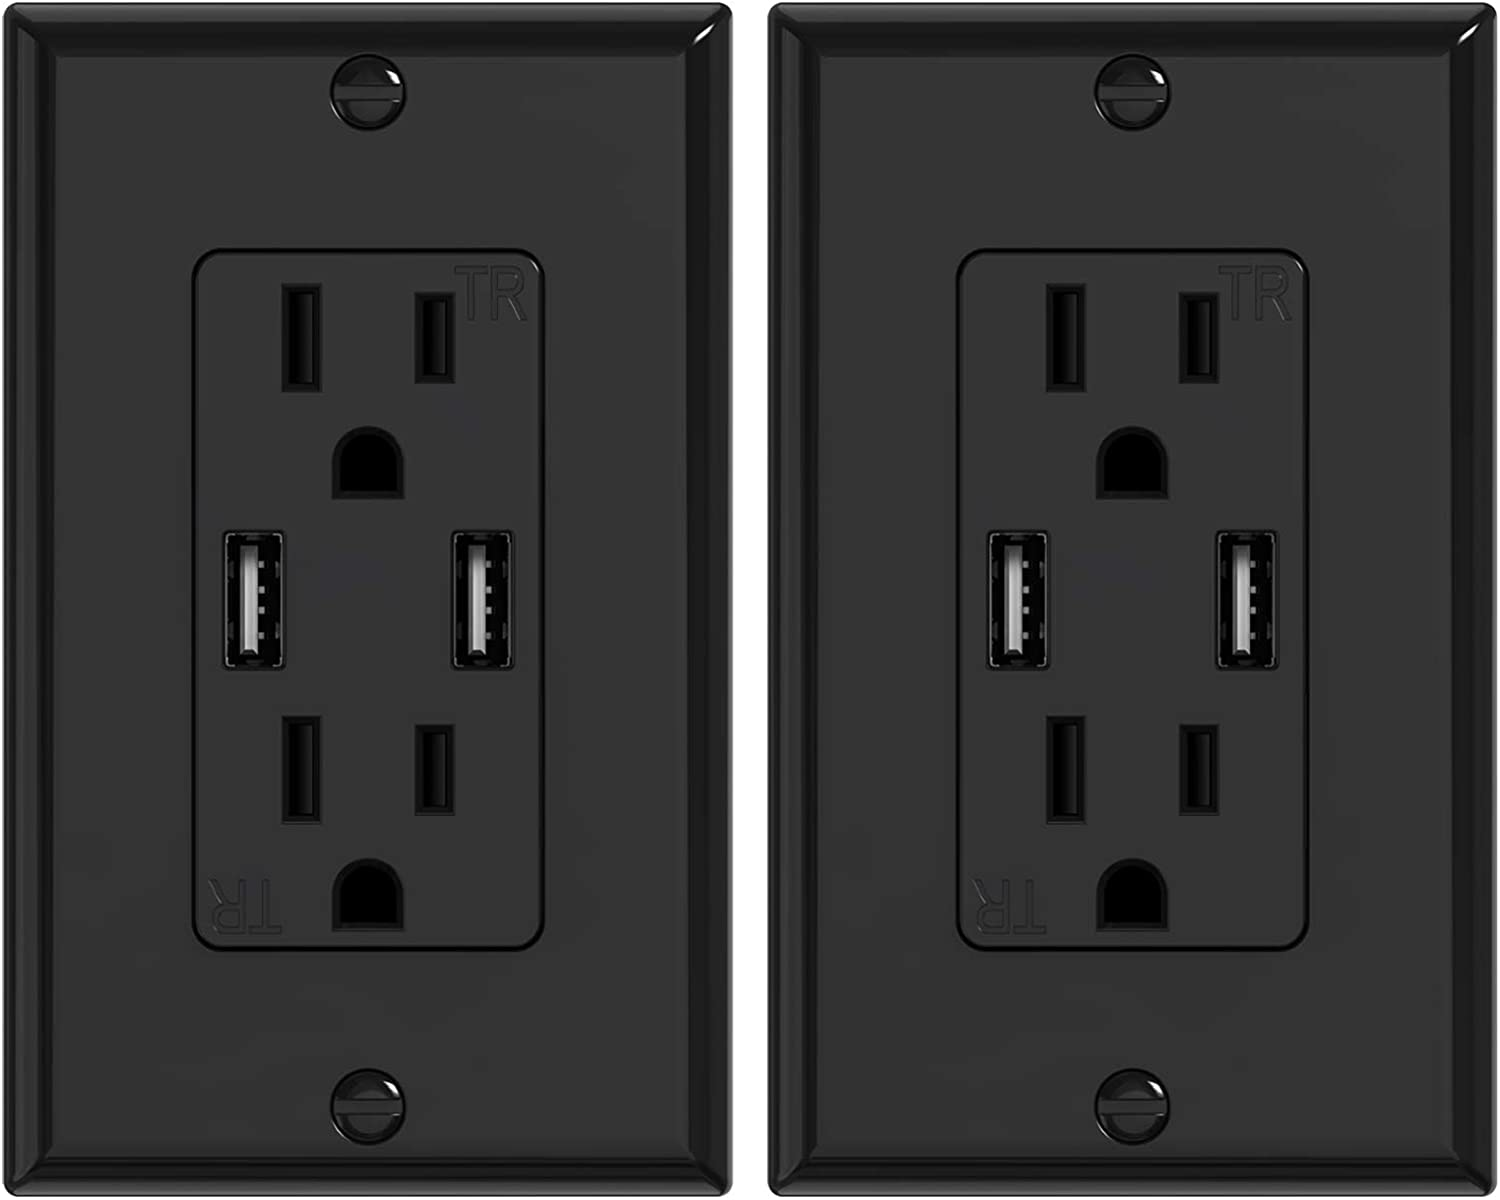 KYHSHJ 3.6A USB Wall Outlet Charger, 15A Tamper-Resistant Receptacles, Compatible with iPhone 11/X/XS/XR/SE/8, LG, HTC Samsung Galaxy S20/S10/S9/Note, More, ETL Certification, Black (10-pack) - -